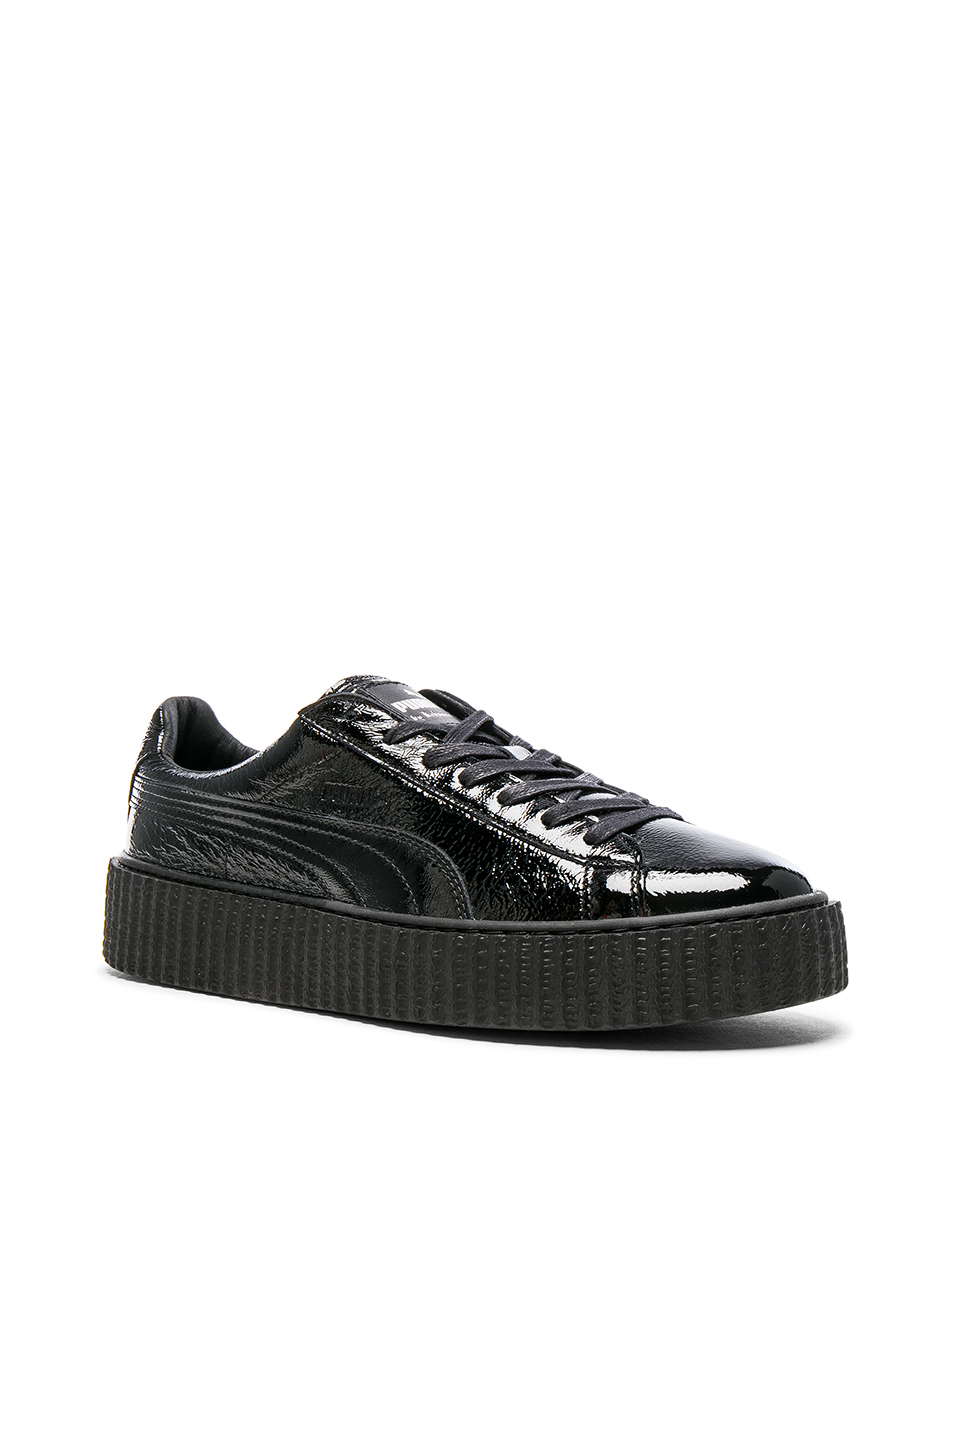 Fenty by Puma Cracked Leather Creepers in Black